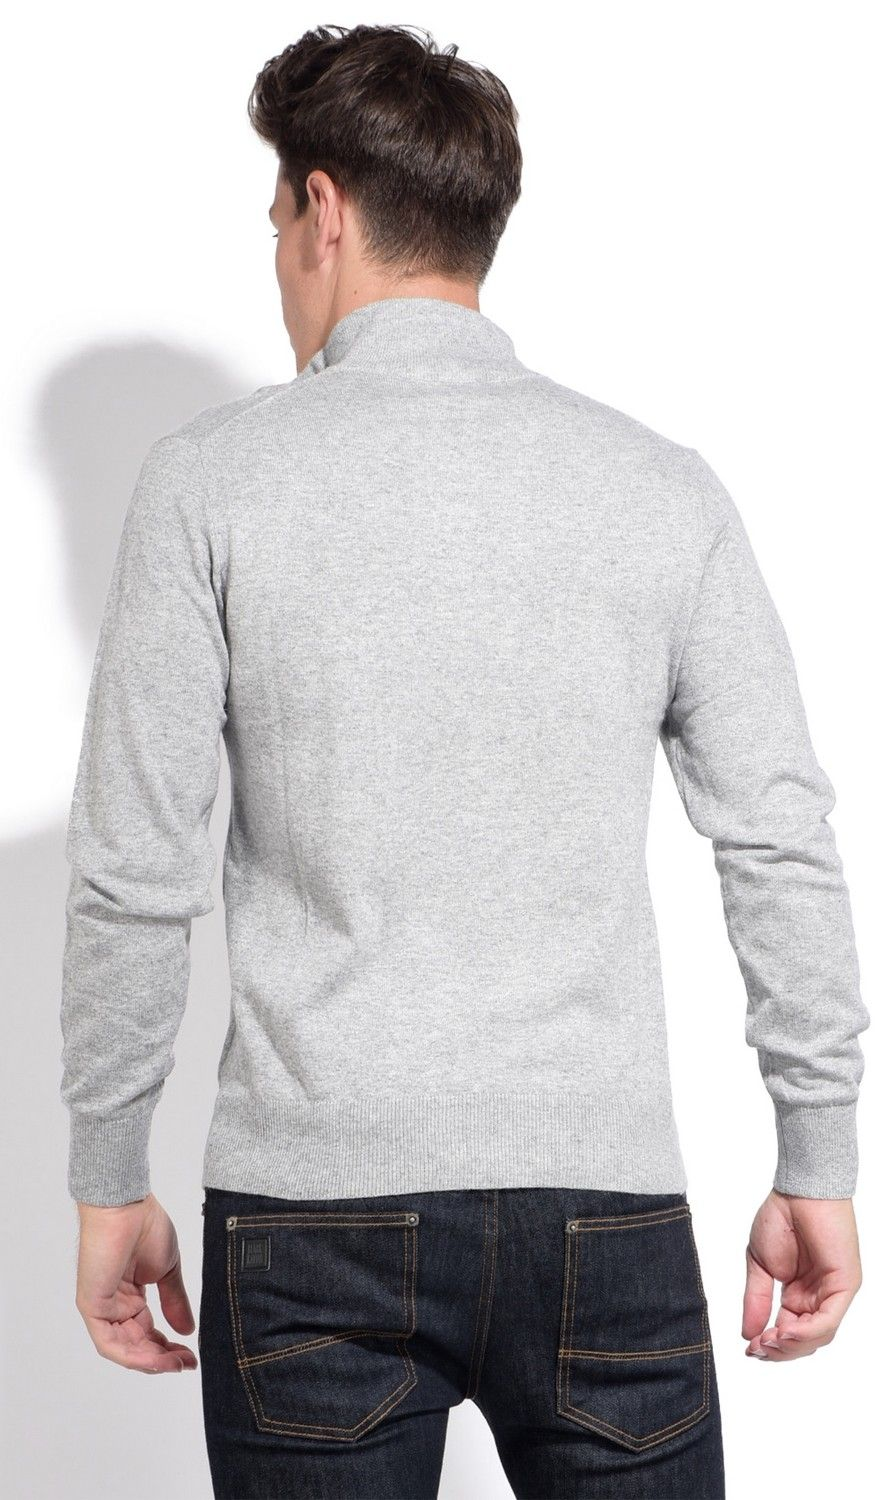 William De Faye High Neck Two-tone Collar Sweater with Buttons in Grey